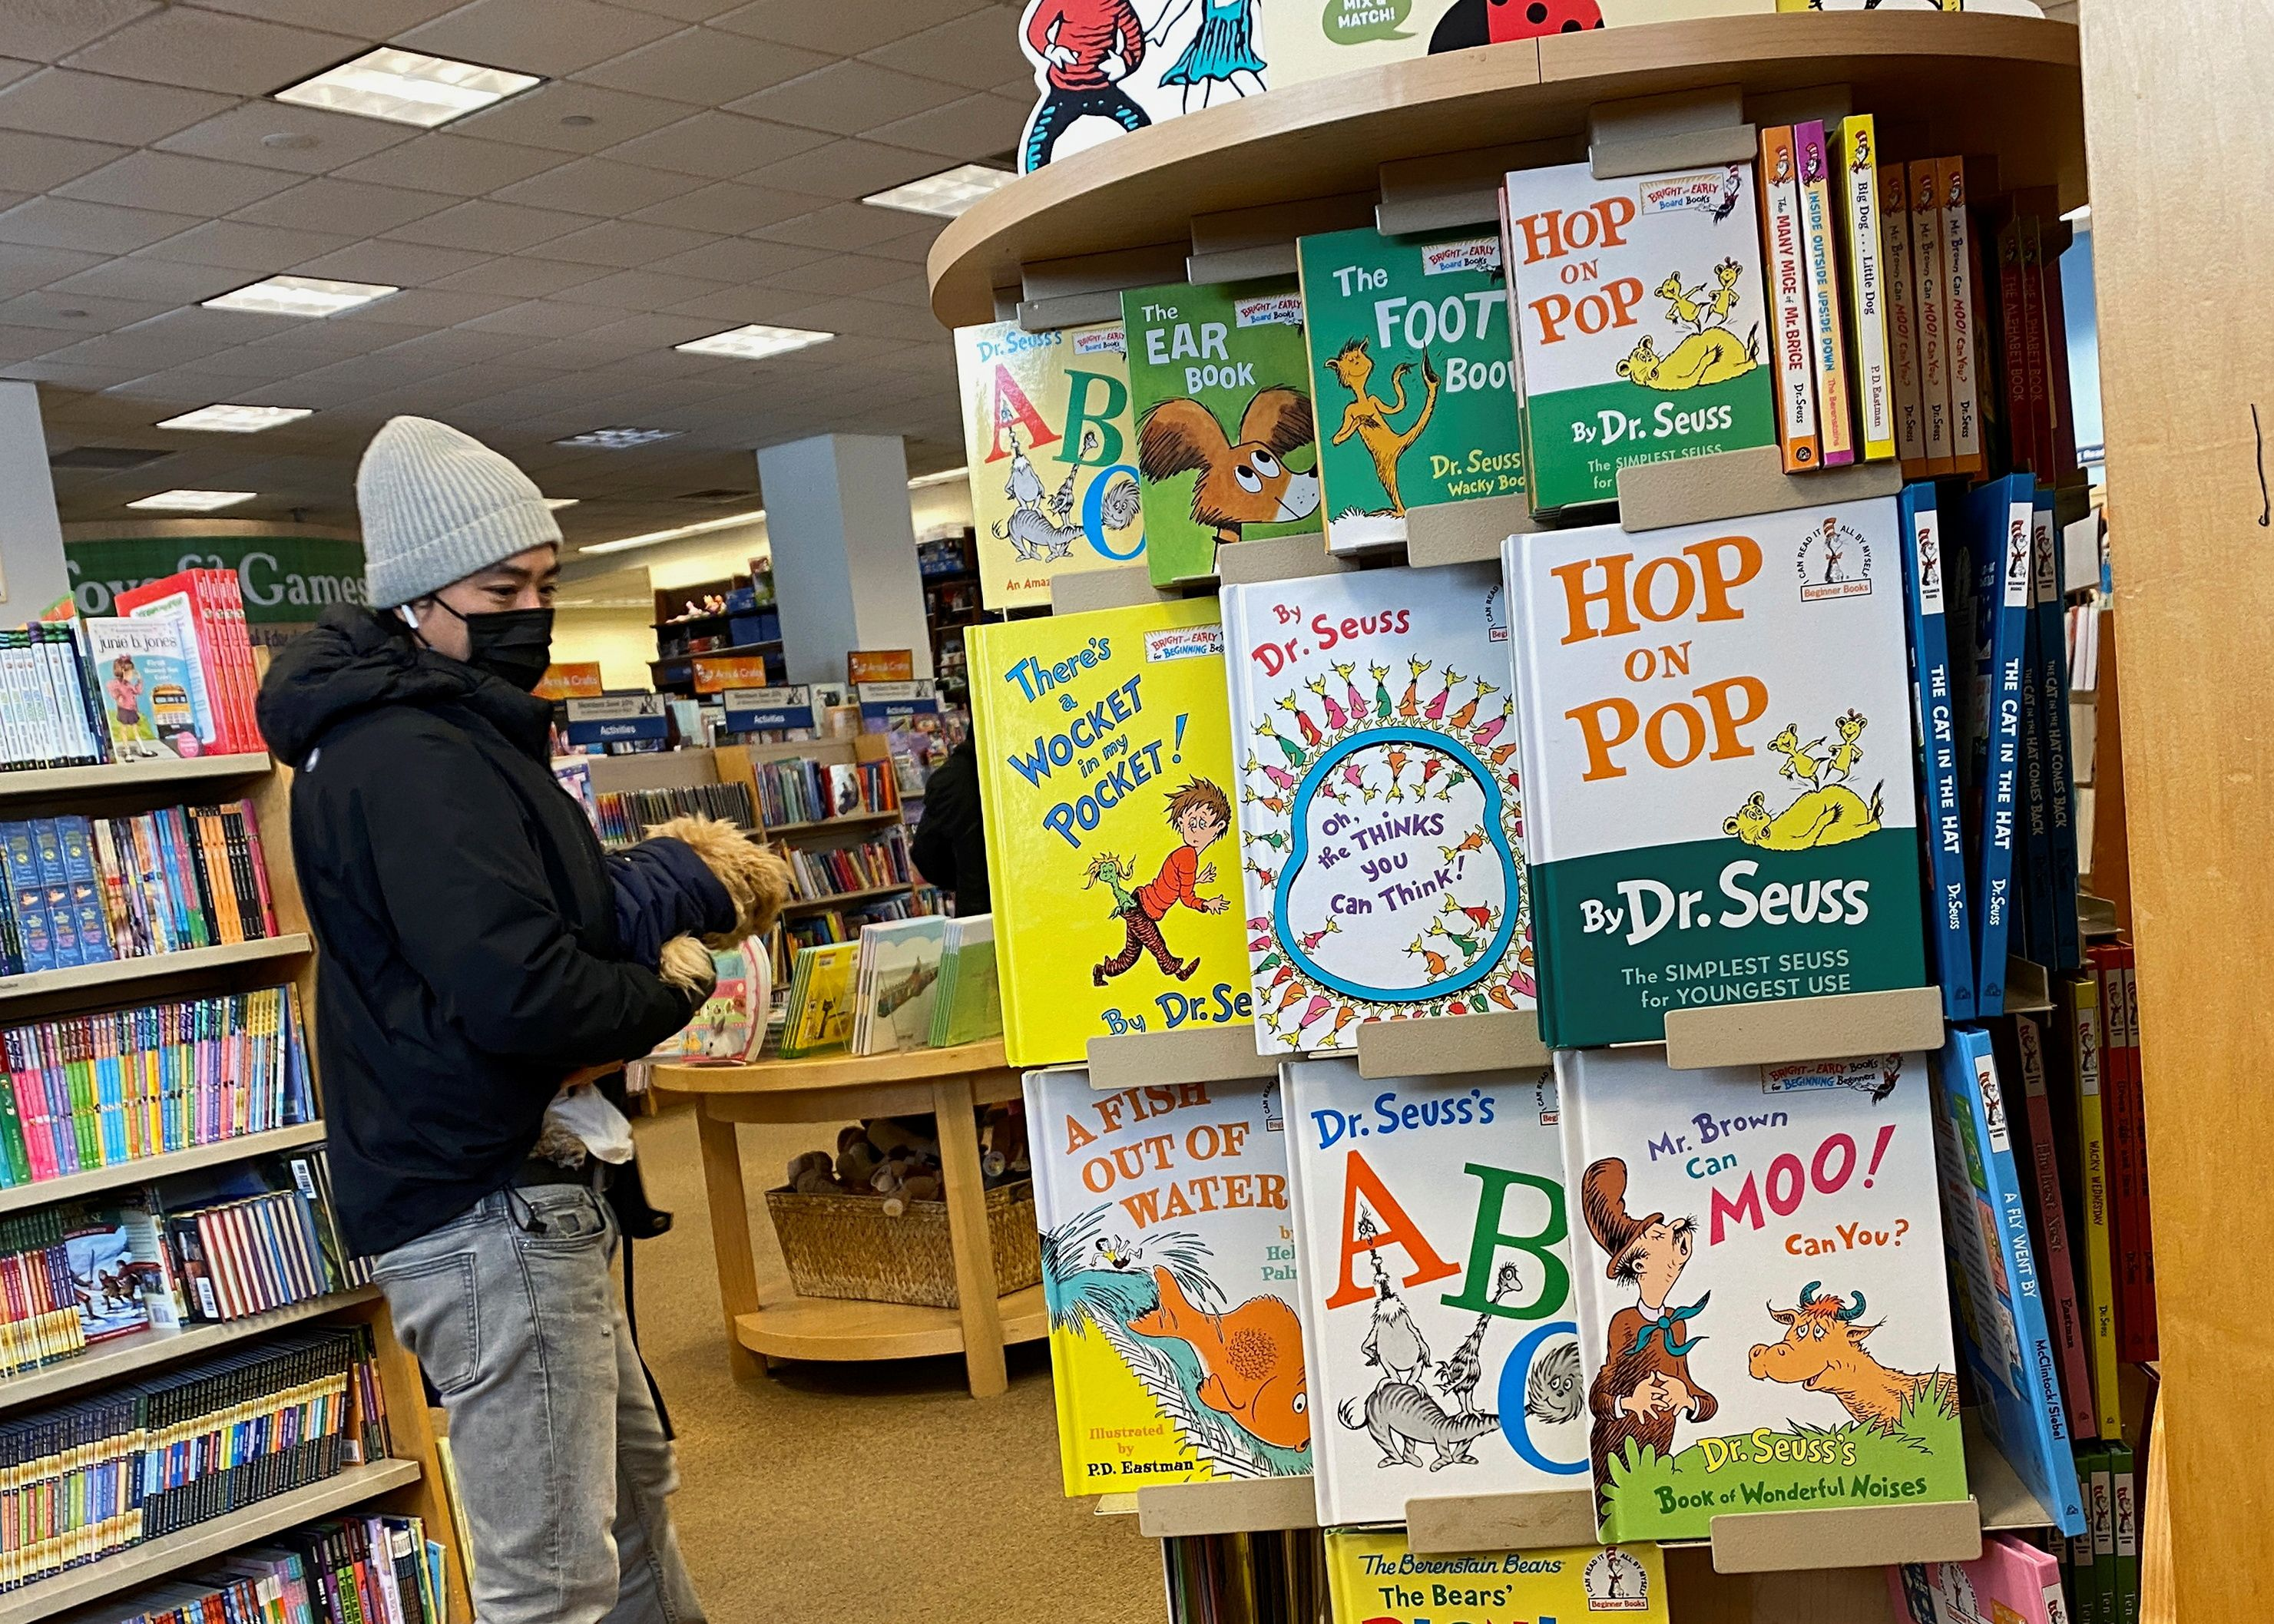 A customer looks at books by Dr. Seuss in a bookstore in Brooklyn, New York, U.S., March 2, 2021. REUTERS/Brendan McDermid